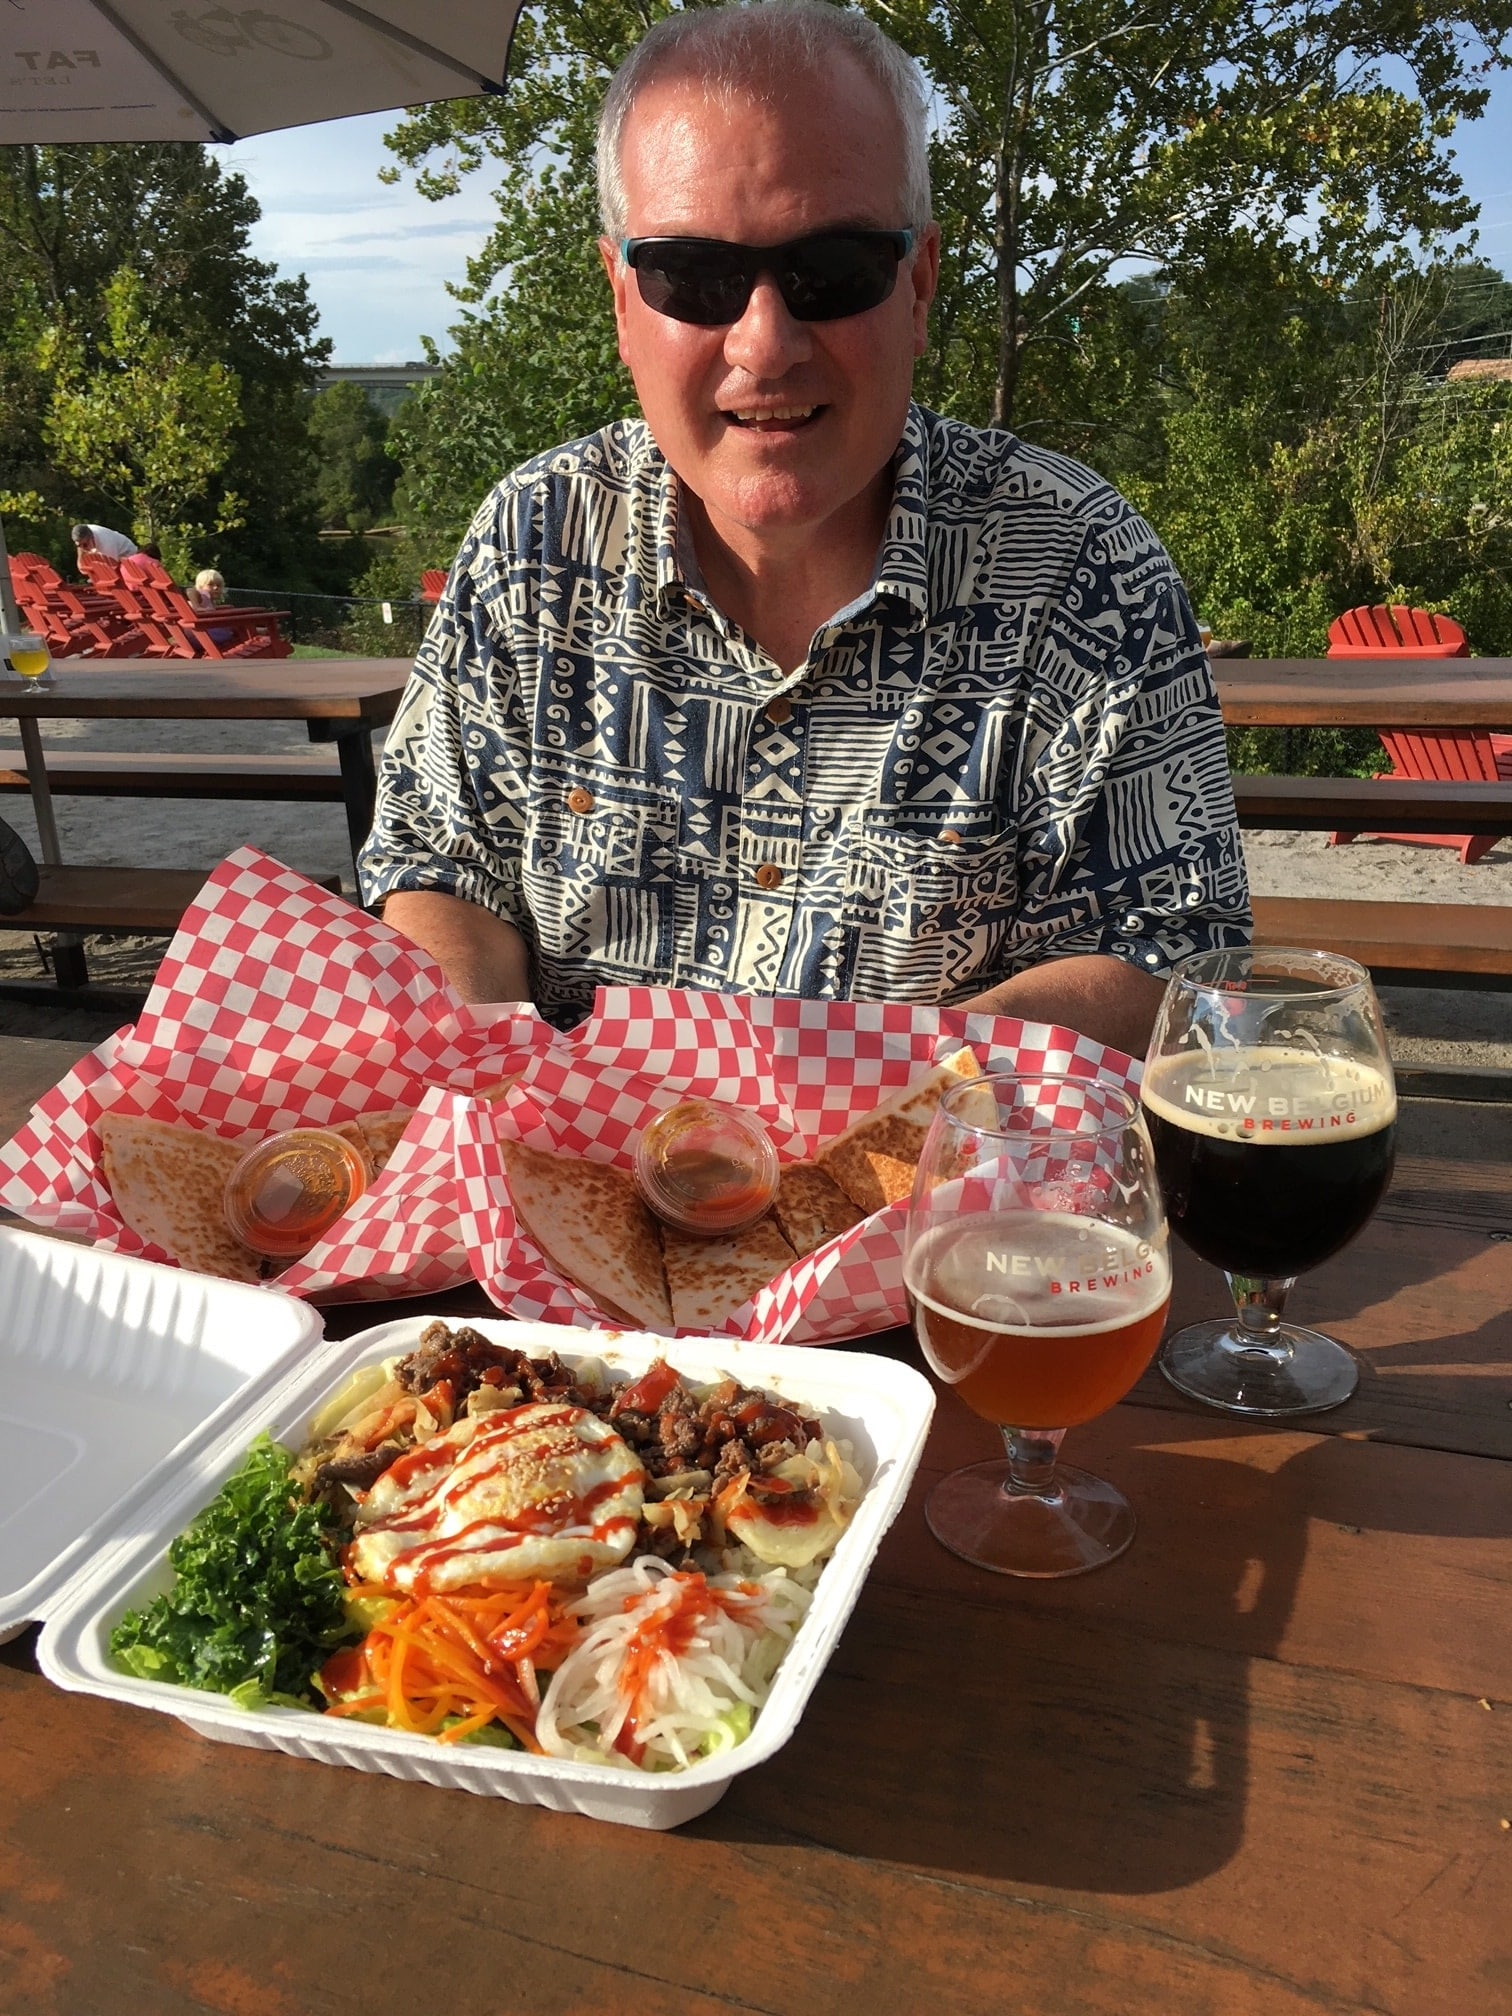 Man at picnic table with beer and Korean food